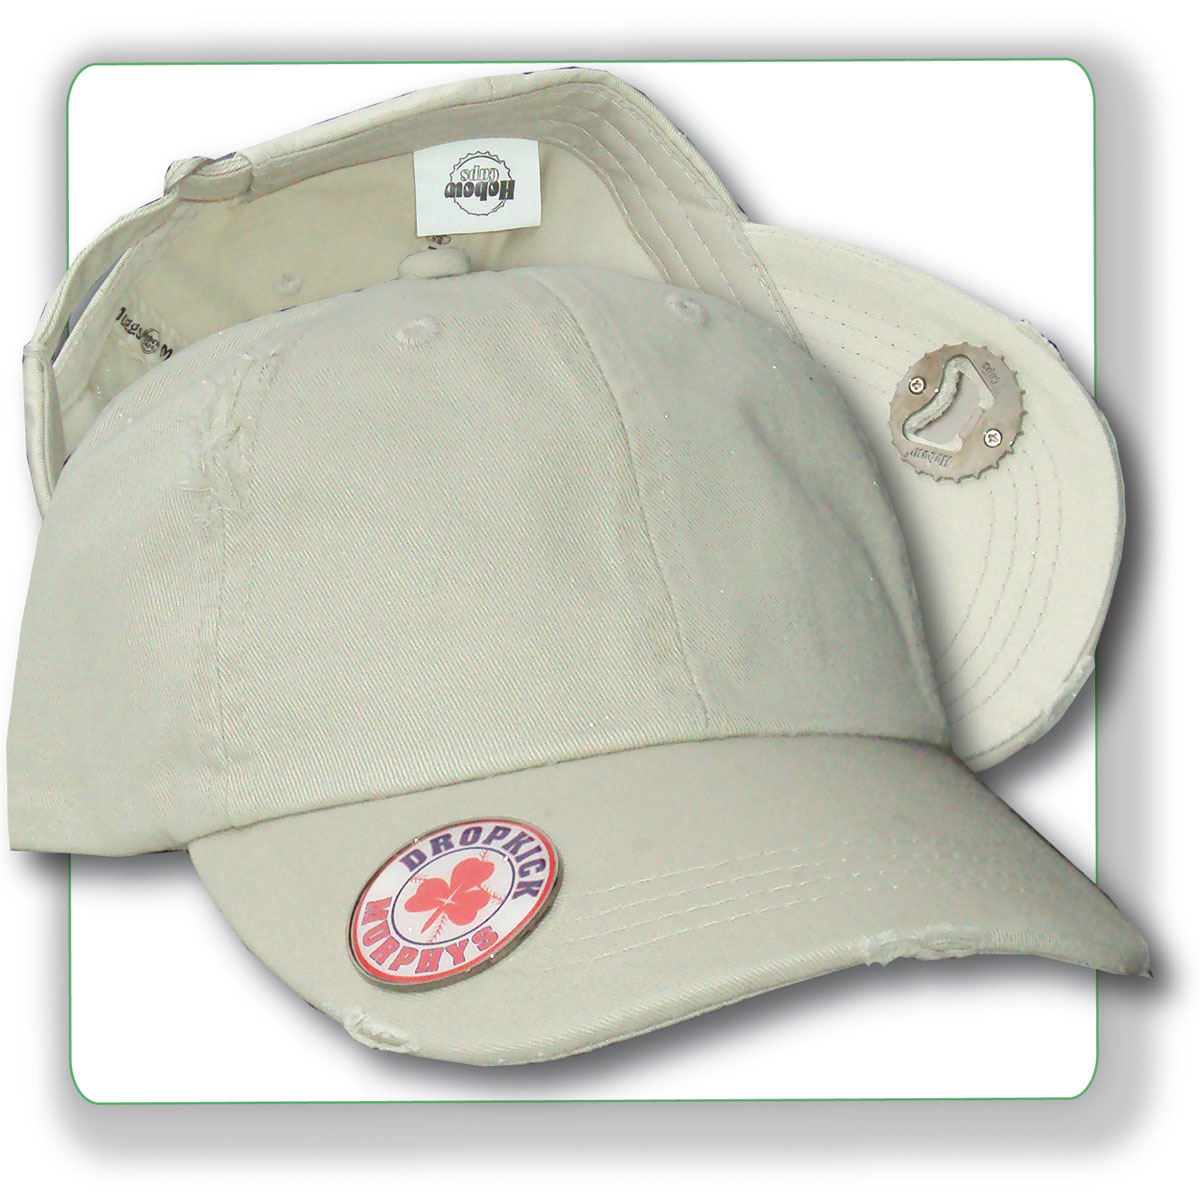 6 panel cotton cap with high duty beverage opener